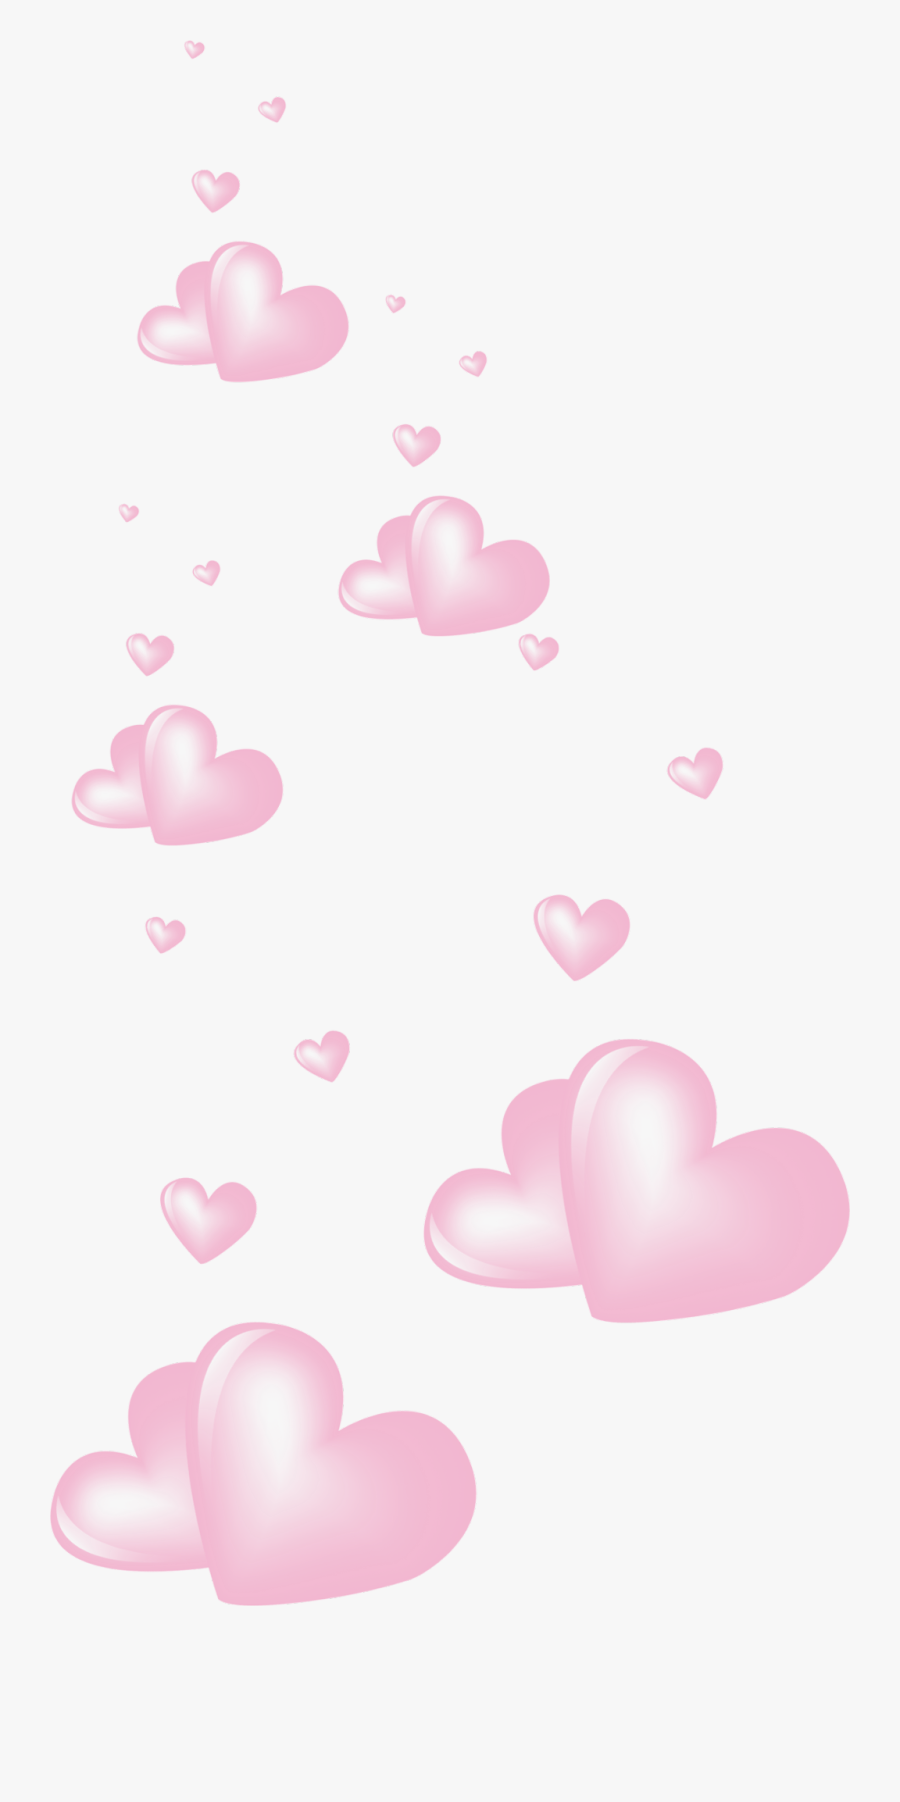 #pink #hearts #heart #love #floating - Pink Floating Hearts Png, Transparent Clipart